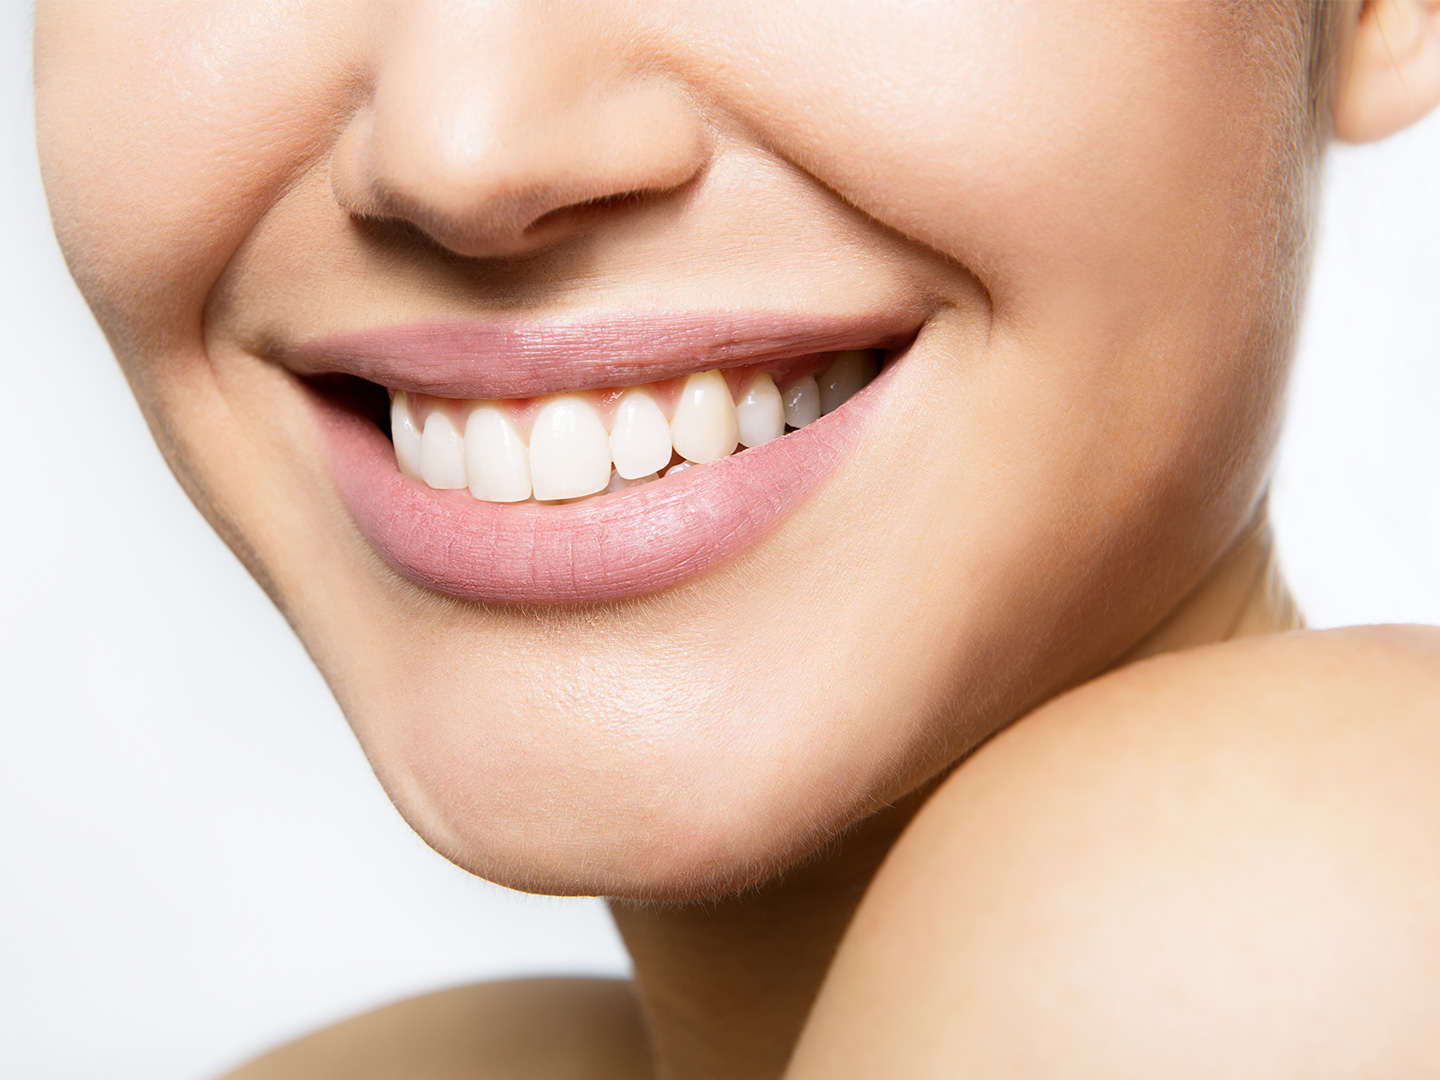 Ayurveda tips for teeth care and oral hygiene